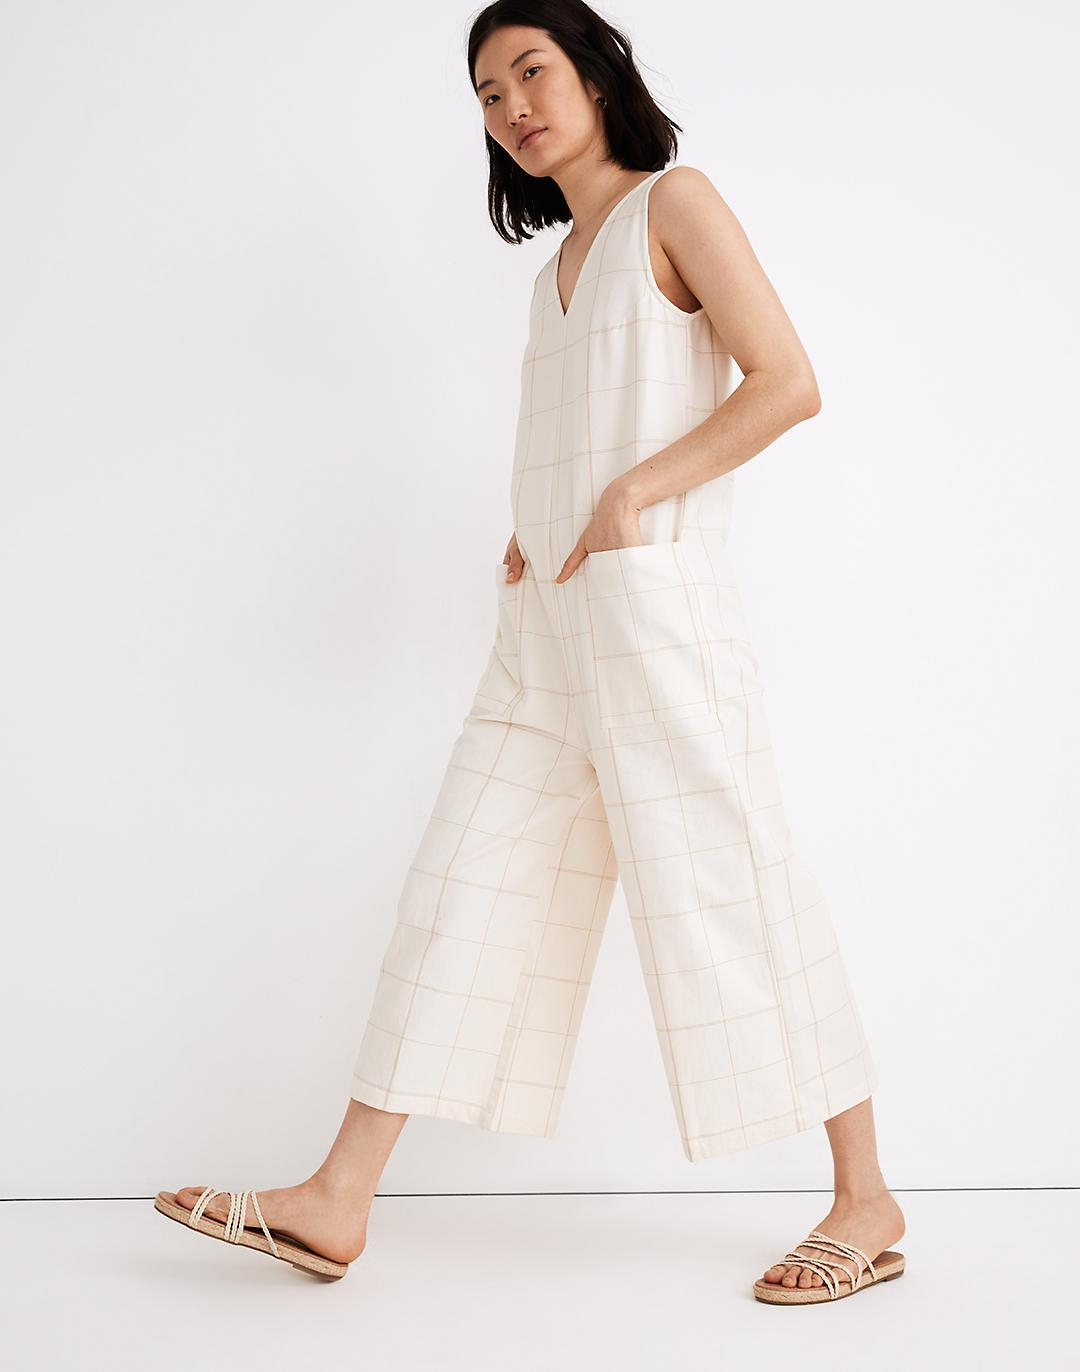 Madewell x LAUDE the Label Pocket Jumpsuit in Windowpane